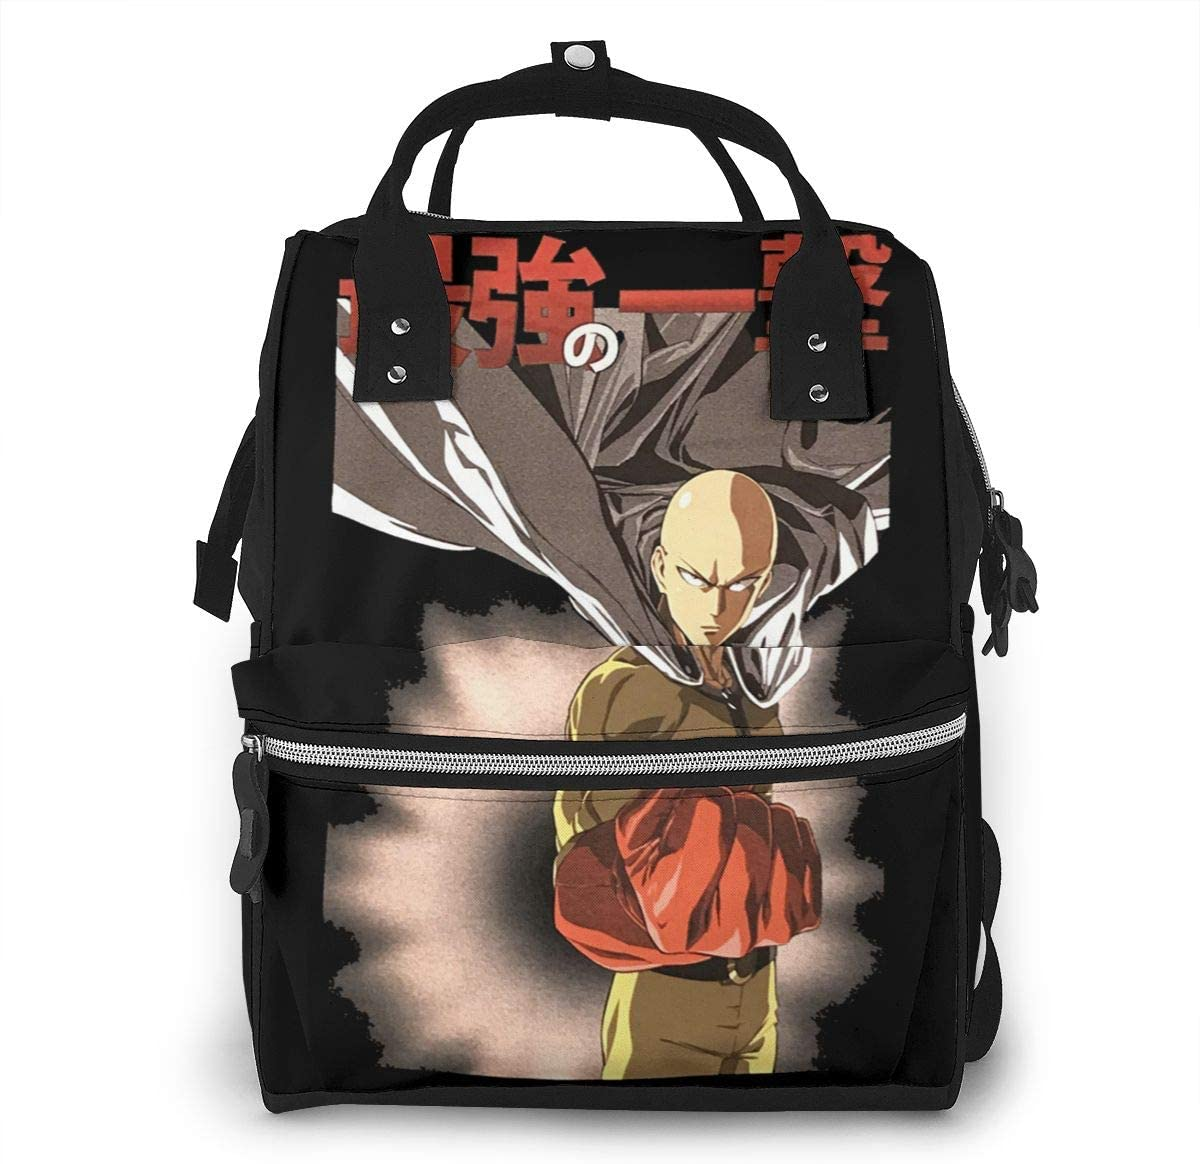 Sherrygeoffrey One Punch Man Diaper Backpack Large Capacity Travel Bag